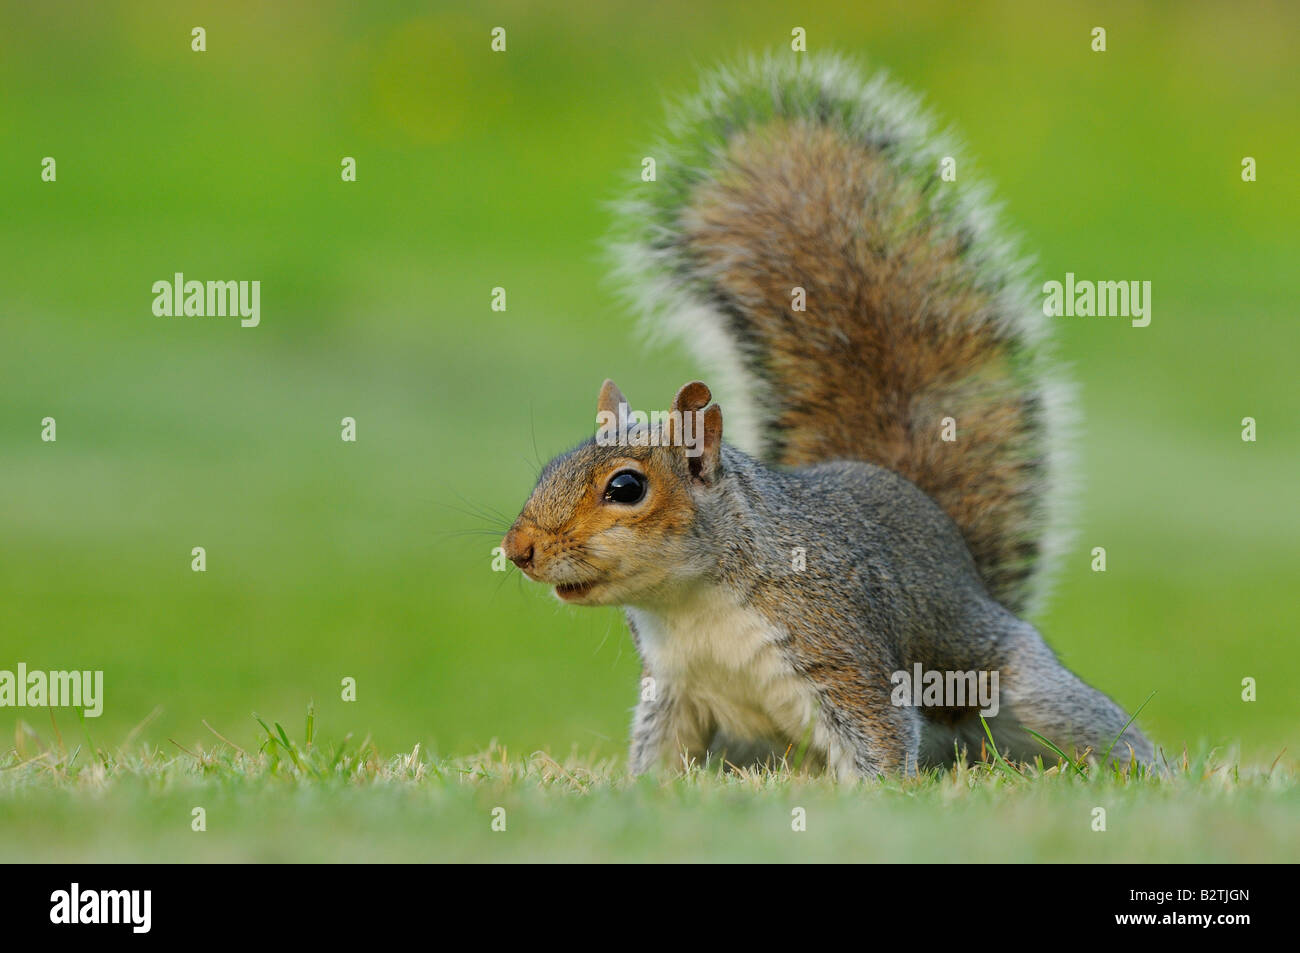 tree rat stockfotos tree rat bilder alamy. Black Bedroom Furniture Sets. Home Design Ideas